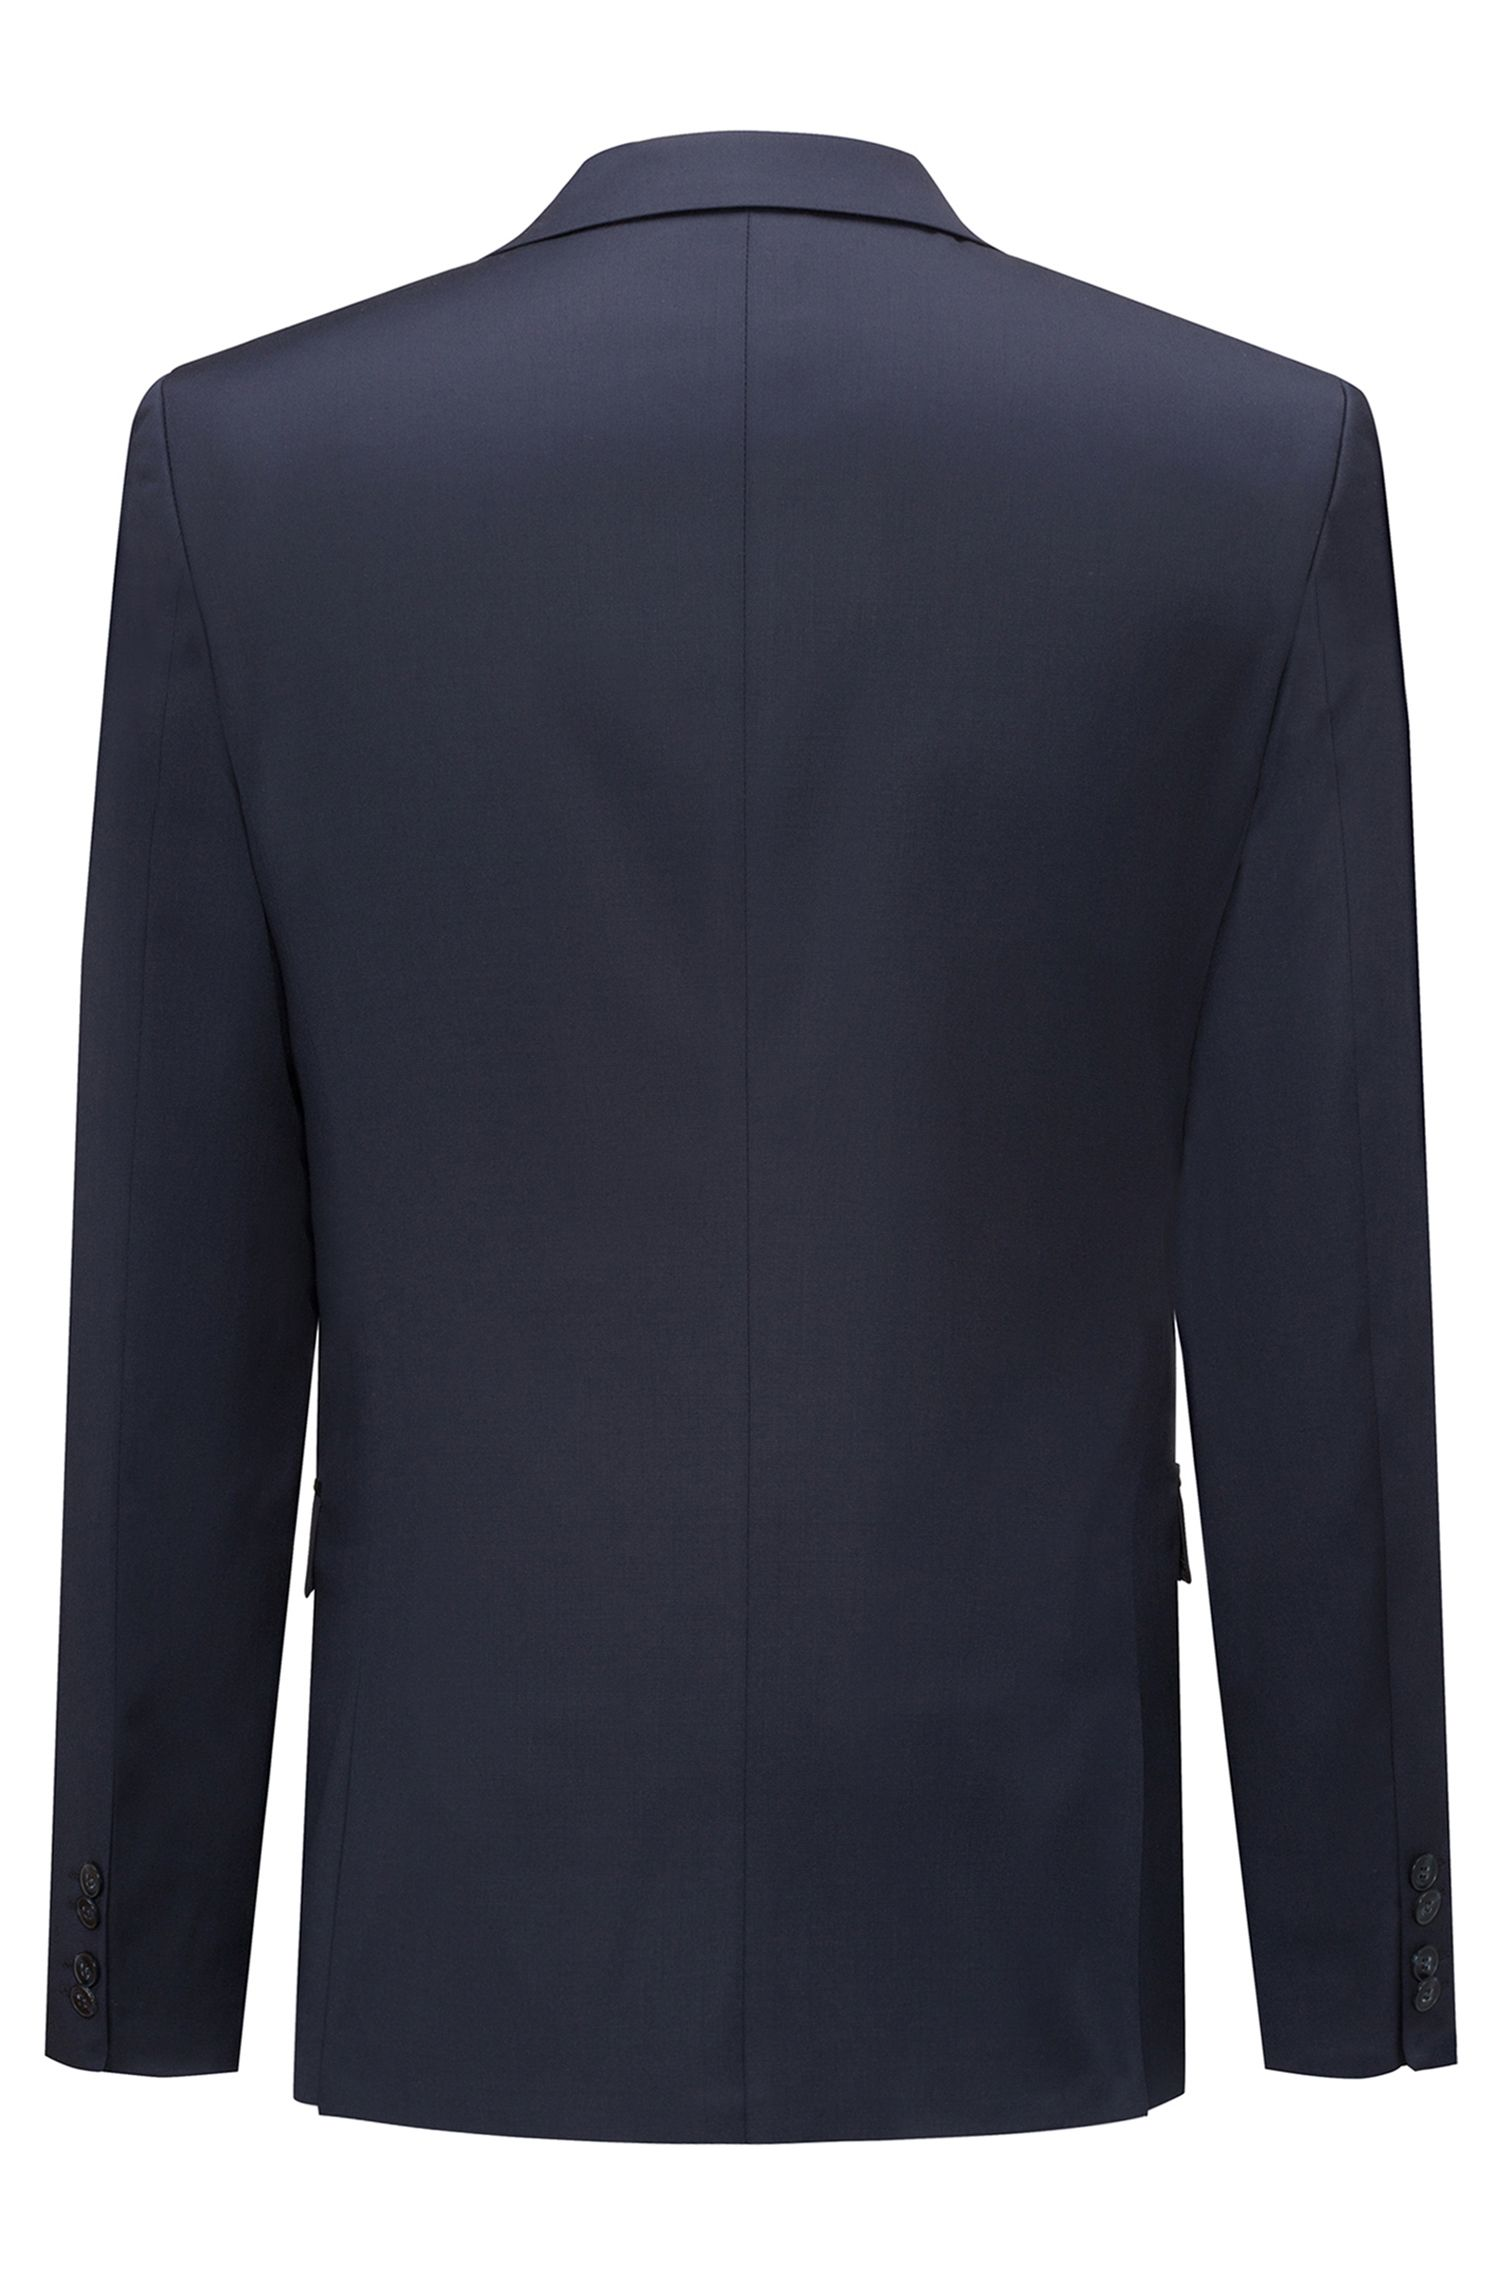 Extra-slim-fit jacket in yarn-dyed virgin wool, Dark Blue